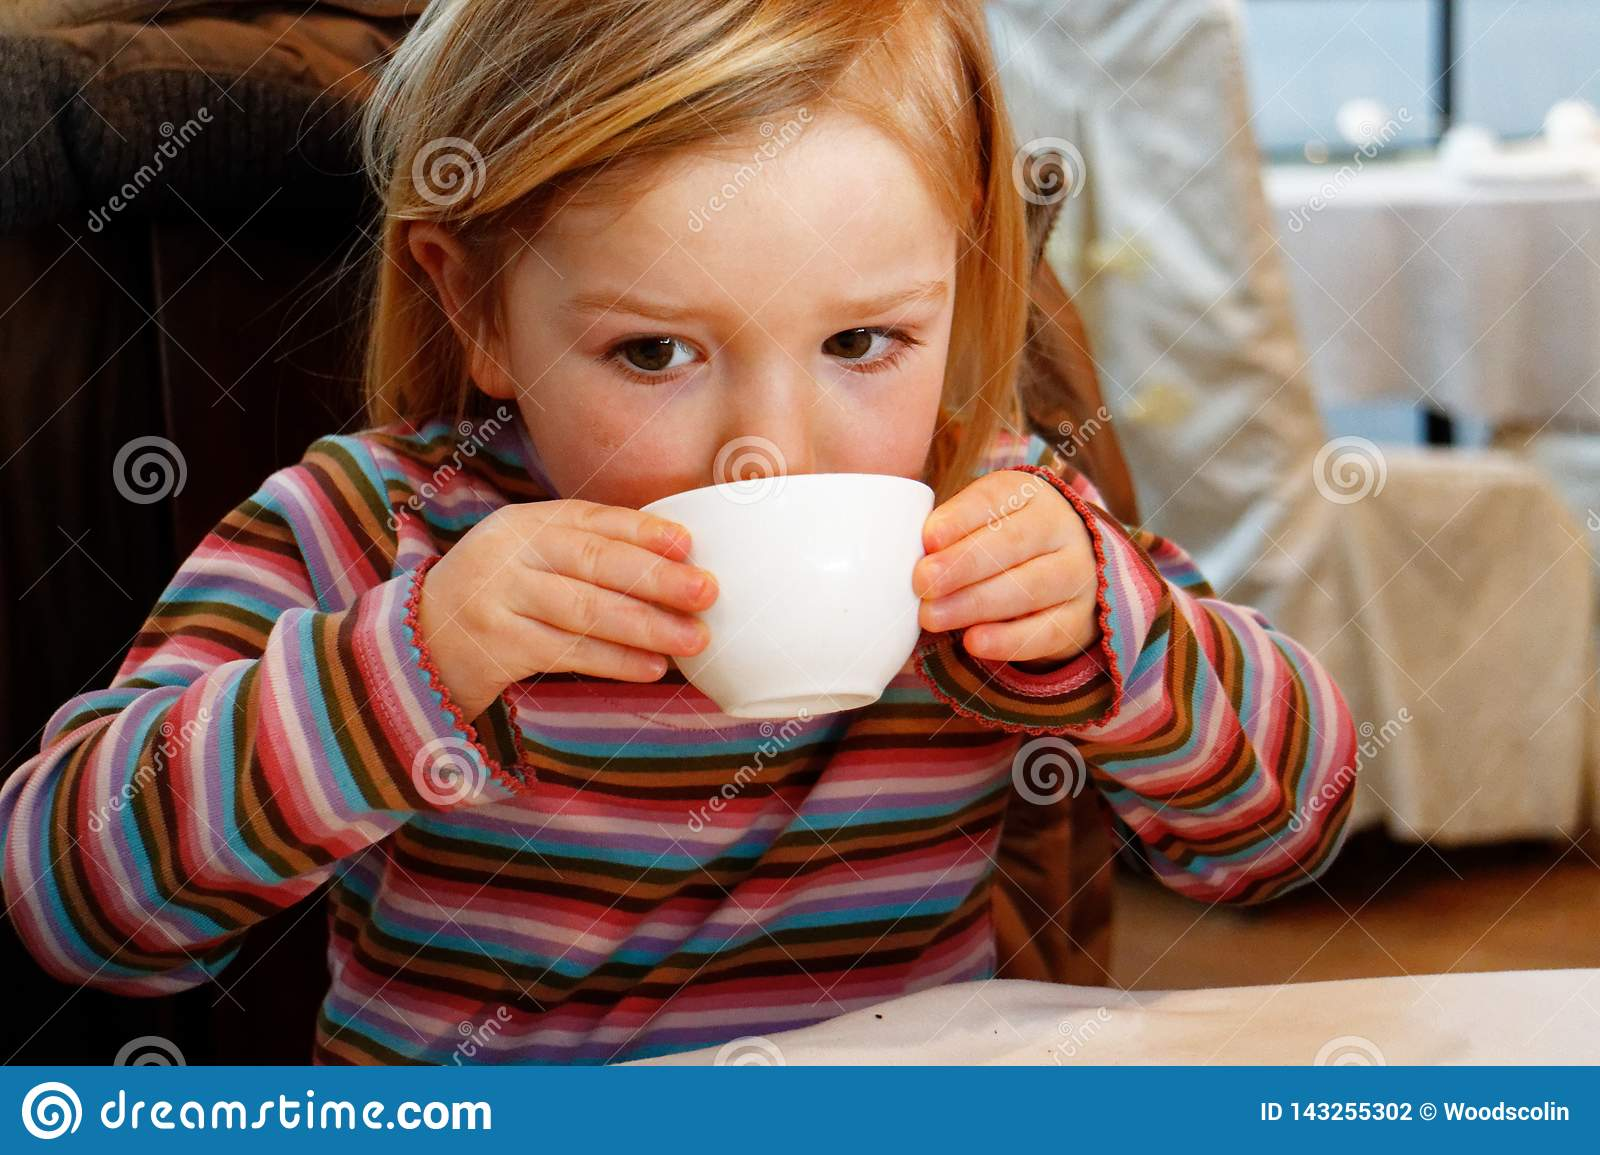 A little girl drinking from a teacup